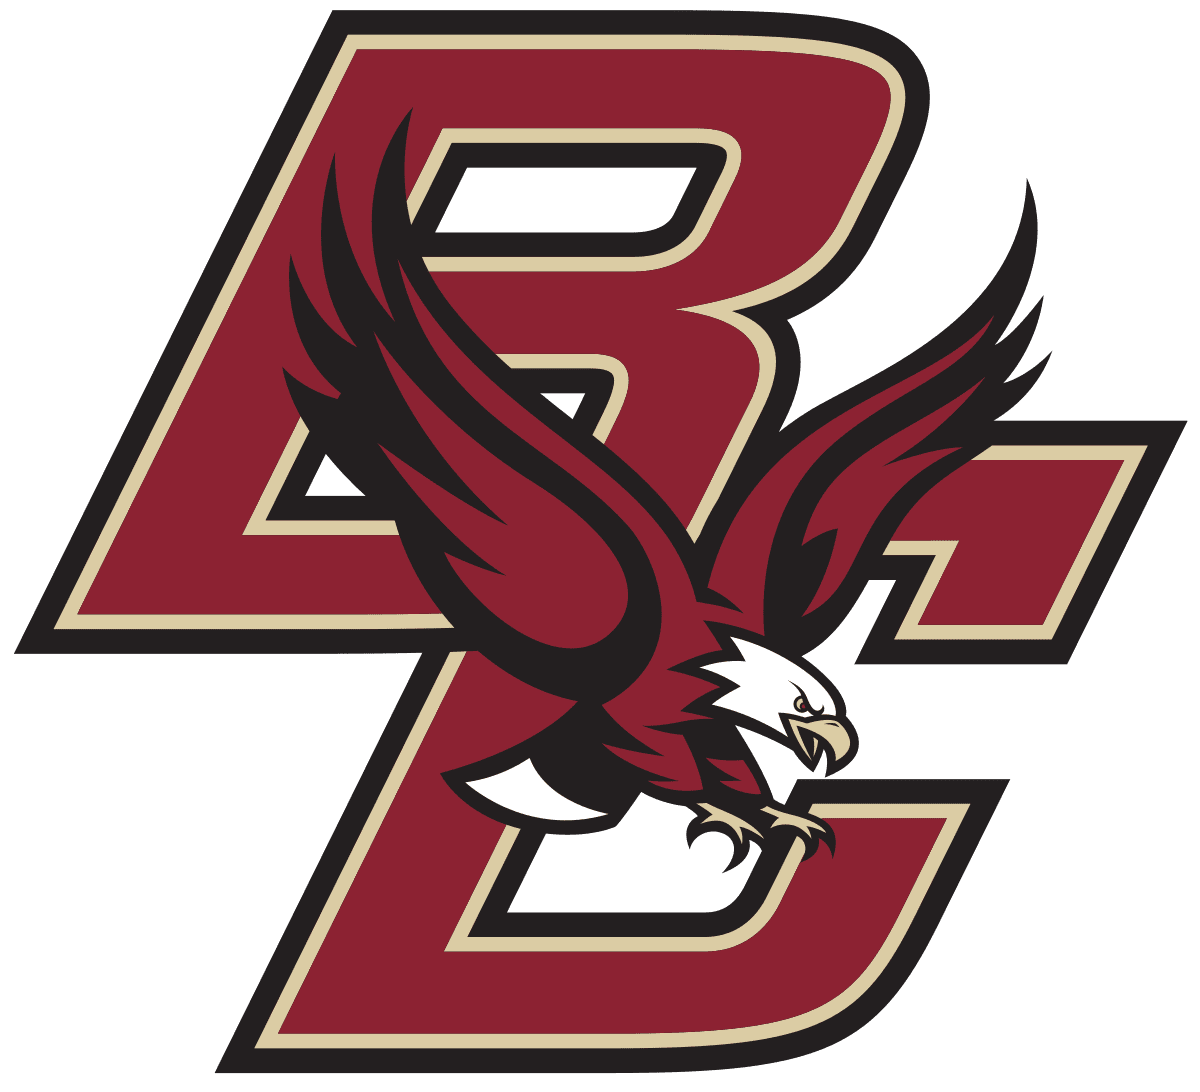 FreeAxez Client - Boston College (Maroon Font with Gold trim) Logo